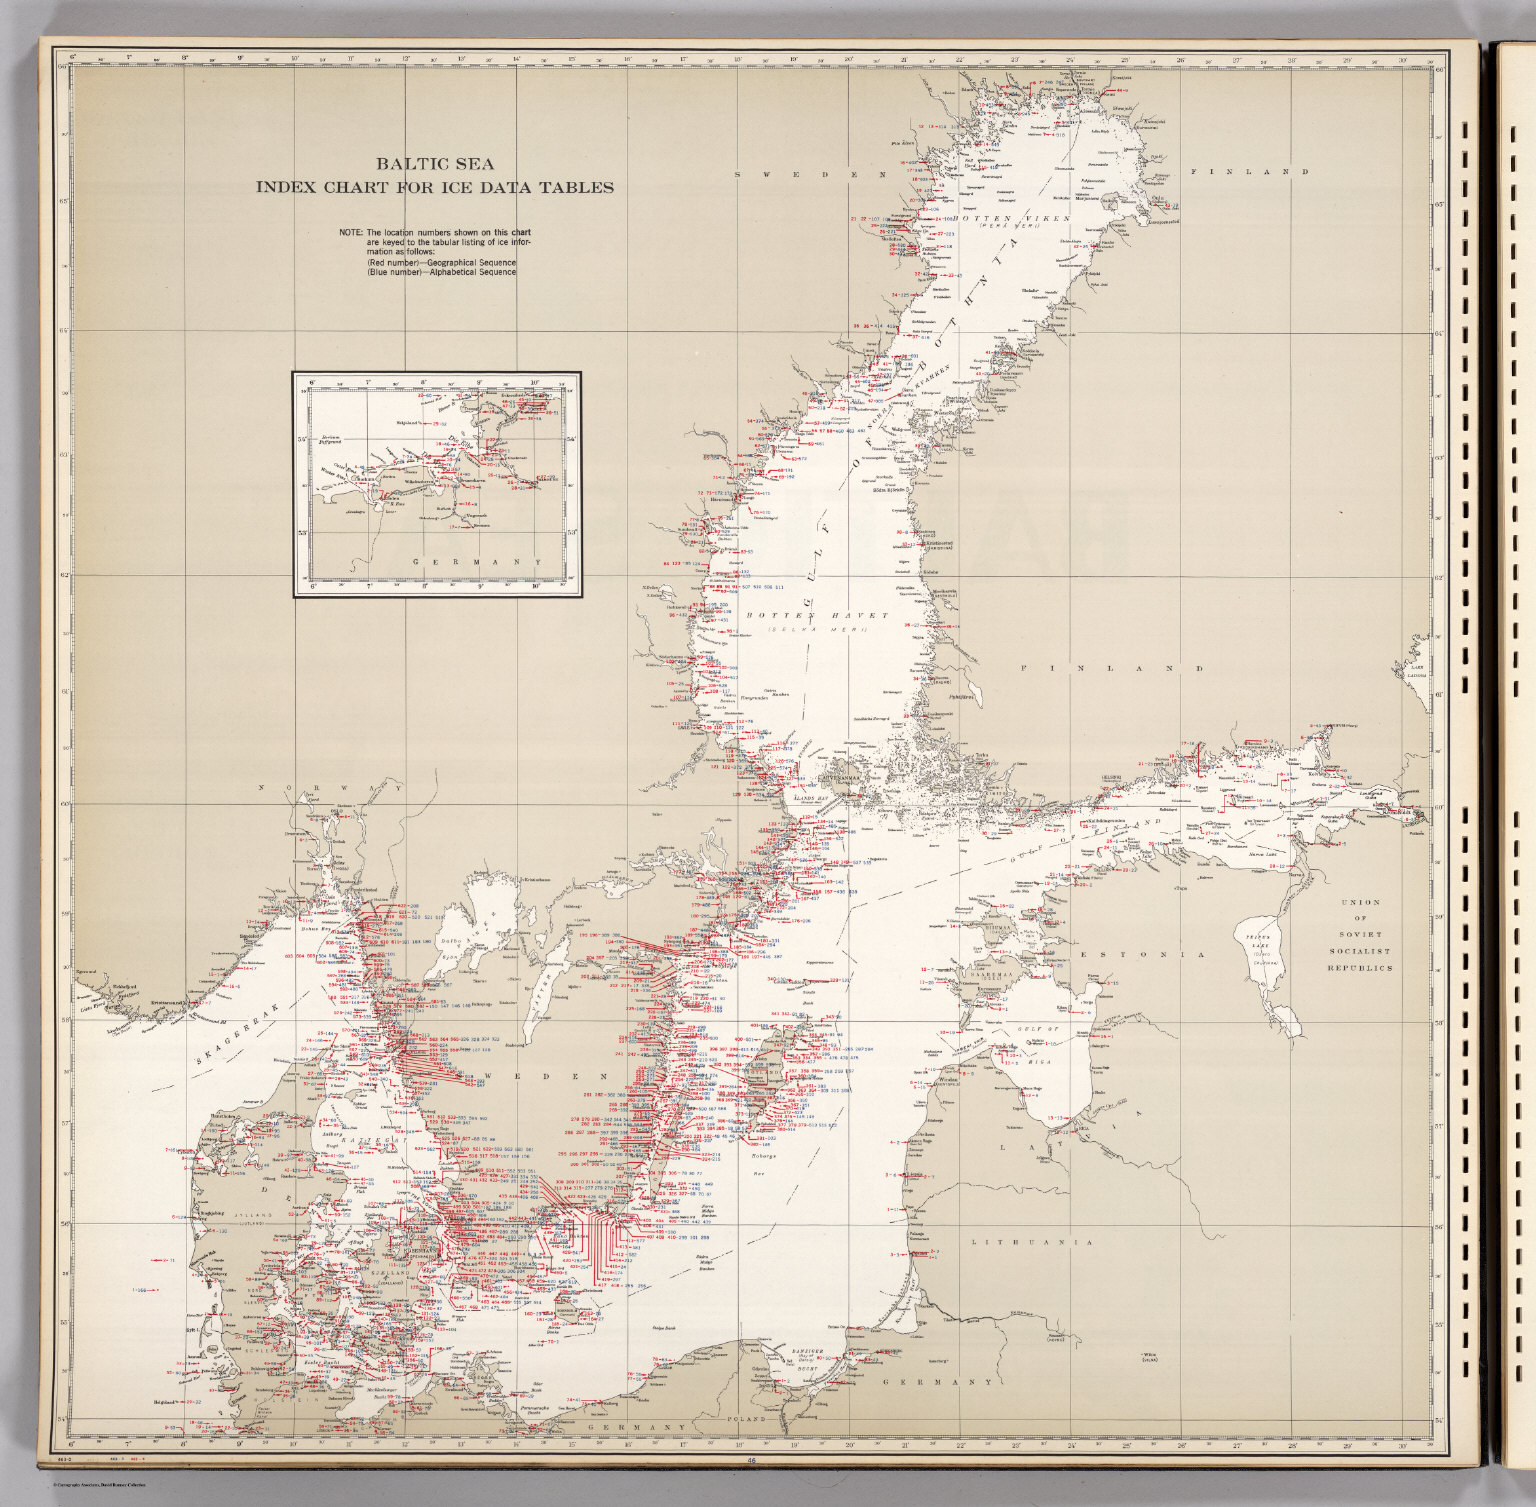 Baltic Sea, Index Chart for Ice Data Tables. - David Rumsey ...